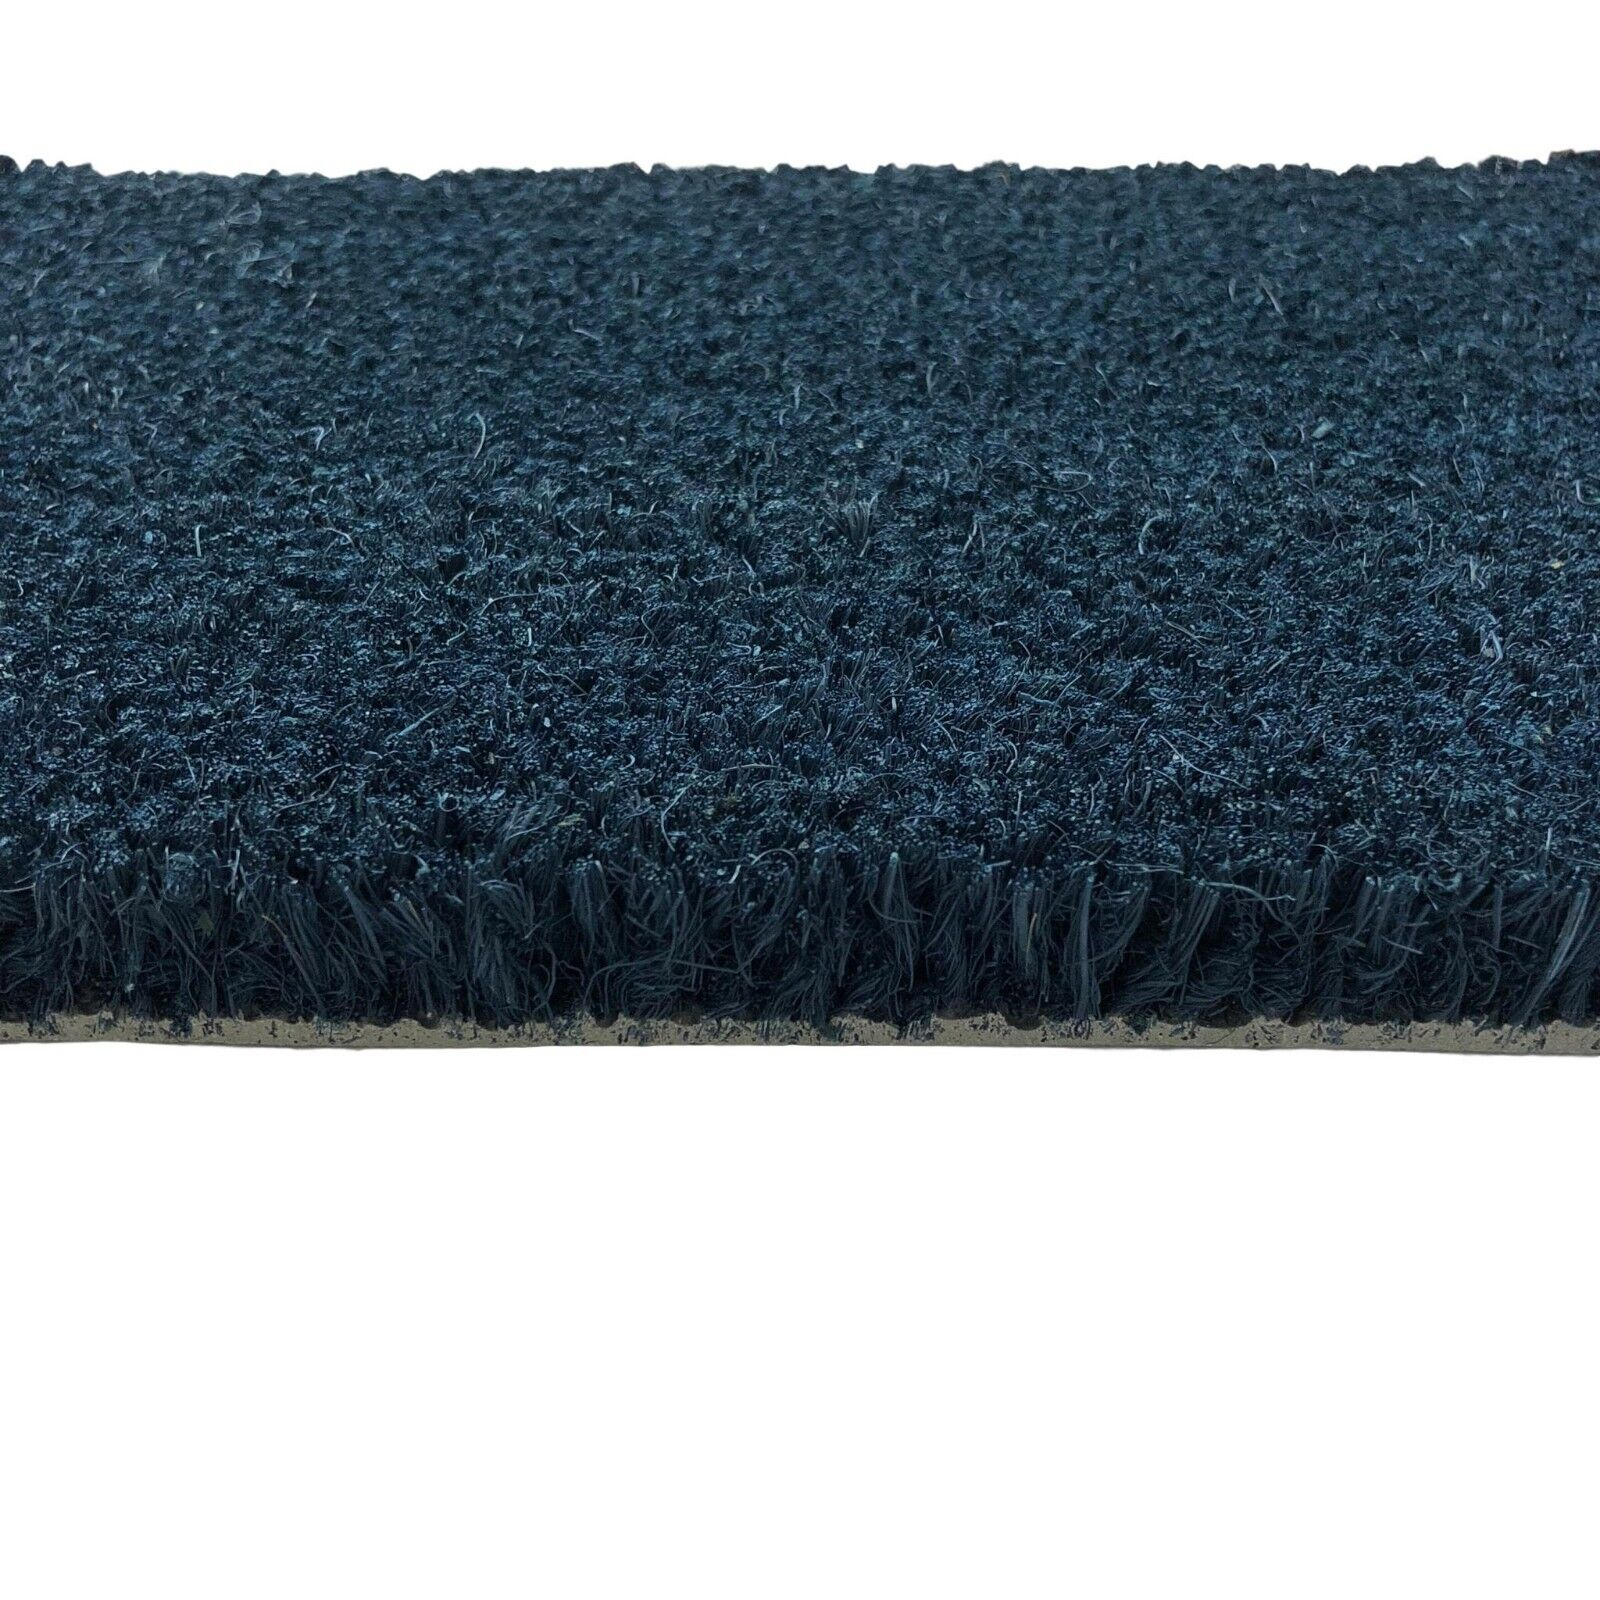 Green Coir Matting Natural Coconut Reception Entrance Door Mat 17mm Any Size